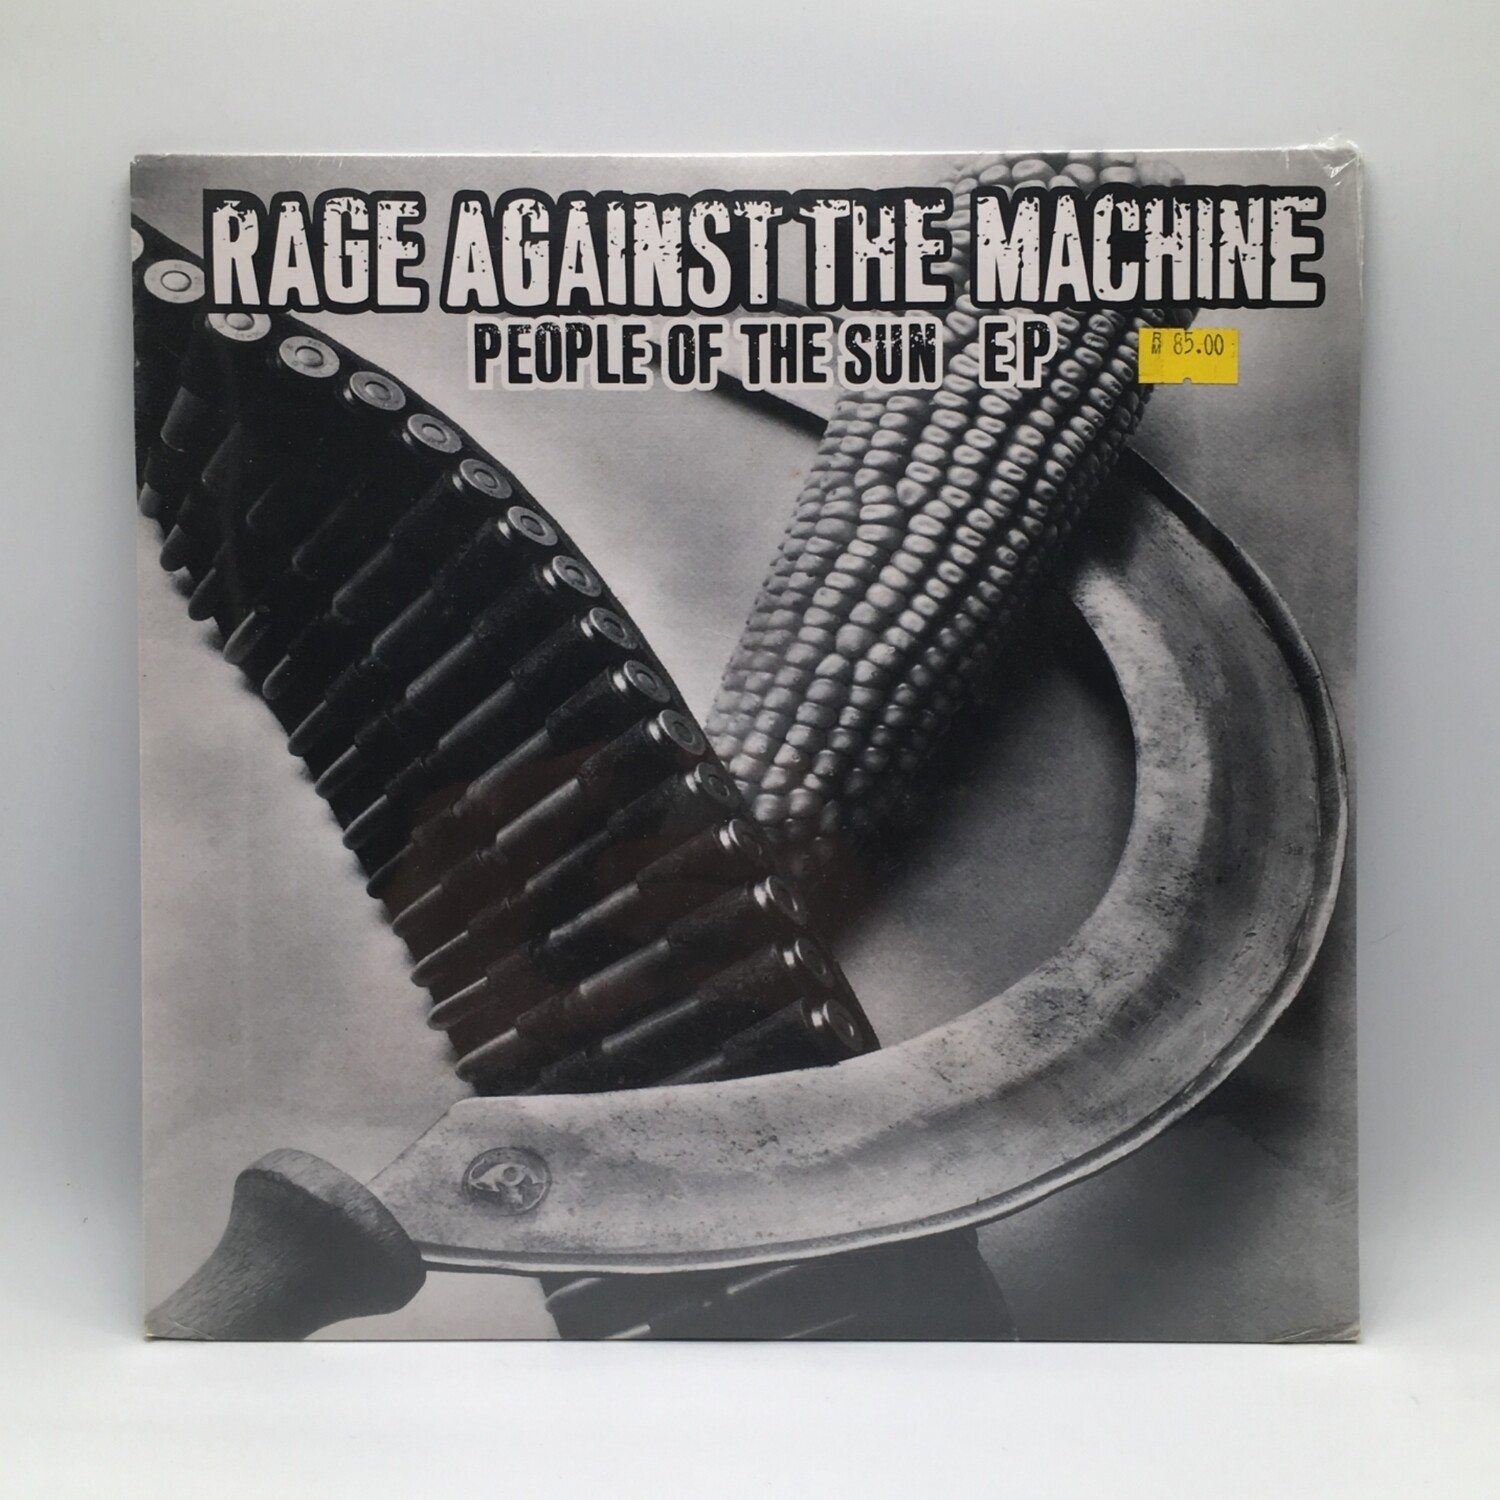 RAGE AGAINST THE MACHINE -PEOPLE OF THE SUN- 10 INCH EP (COLOR VINYL)